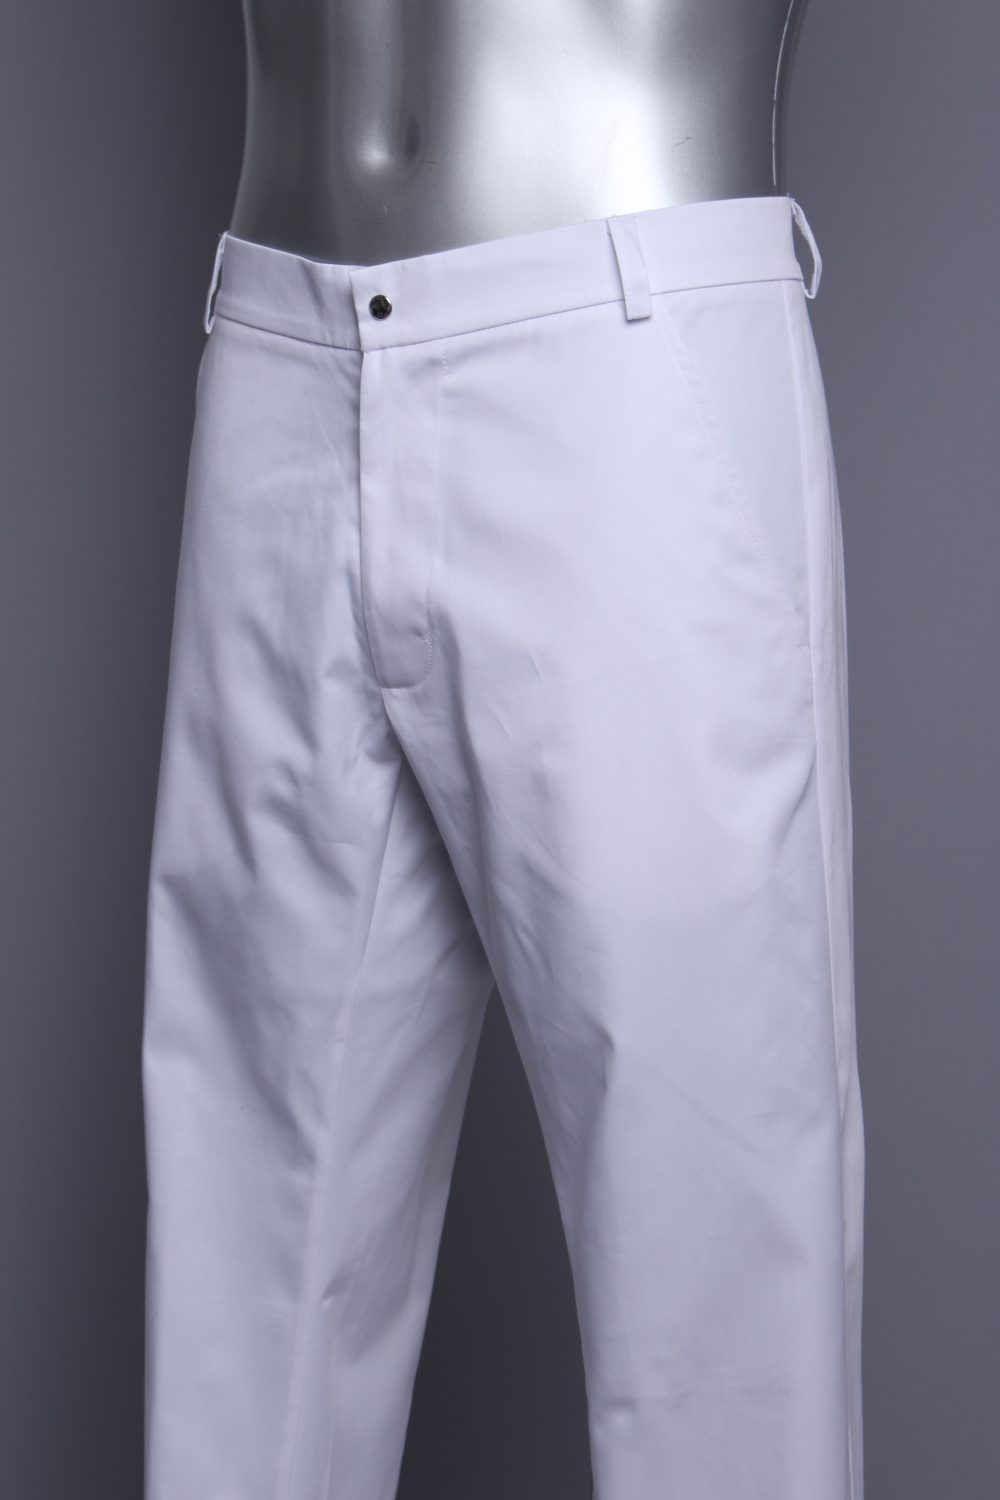 medical, spa working clothes,